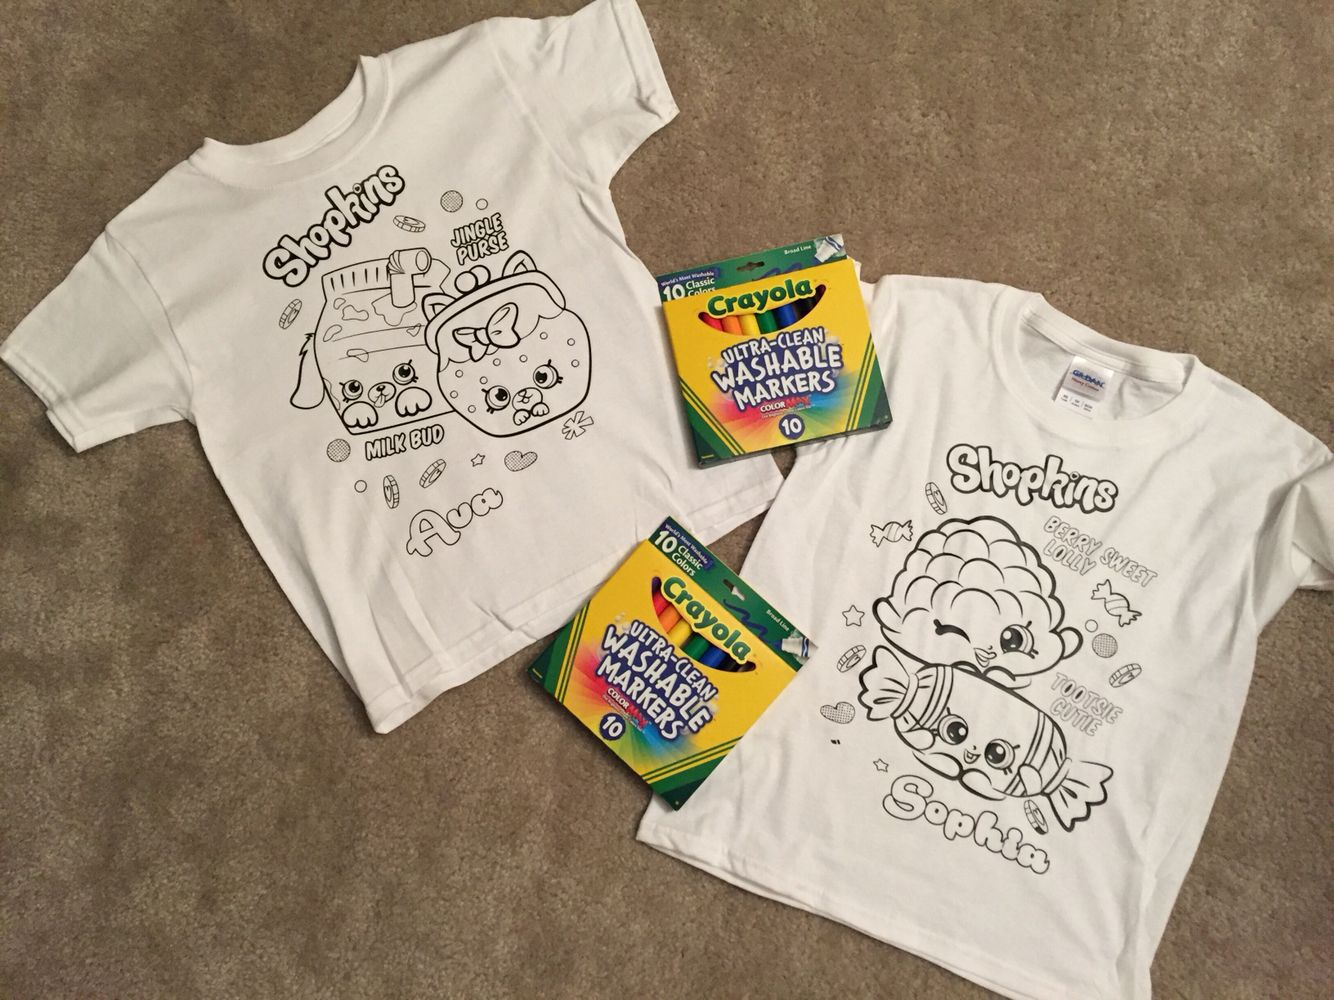 8f687f202 Shopkins coloring shirts I made with heat transfer vinyl cut on my  silhouette cameo. A birthday gift for my nieces. (Only for personal use!)  Crayola ...